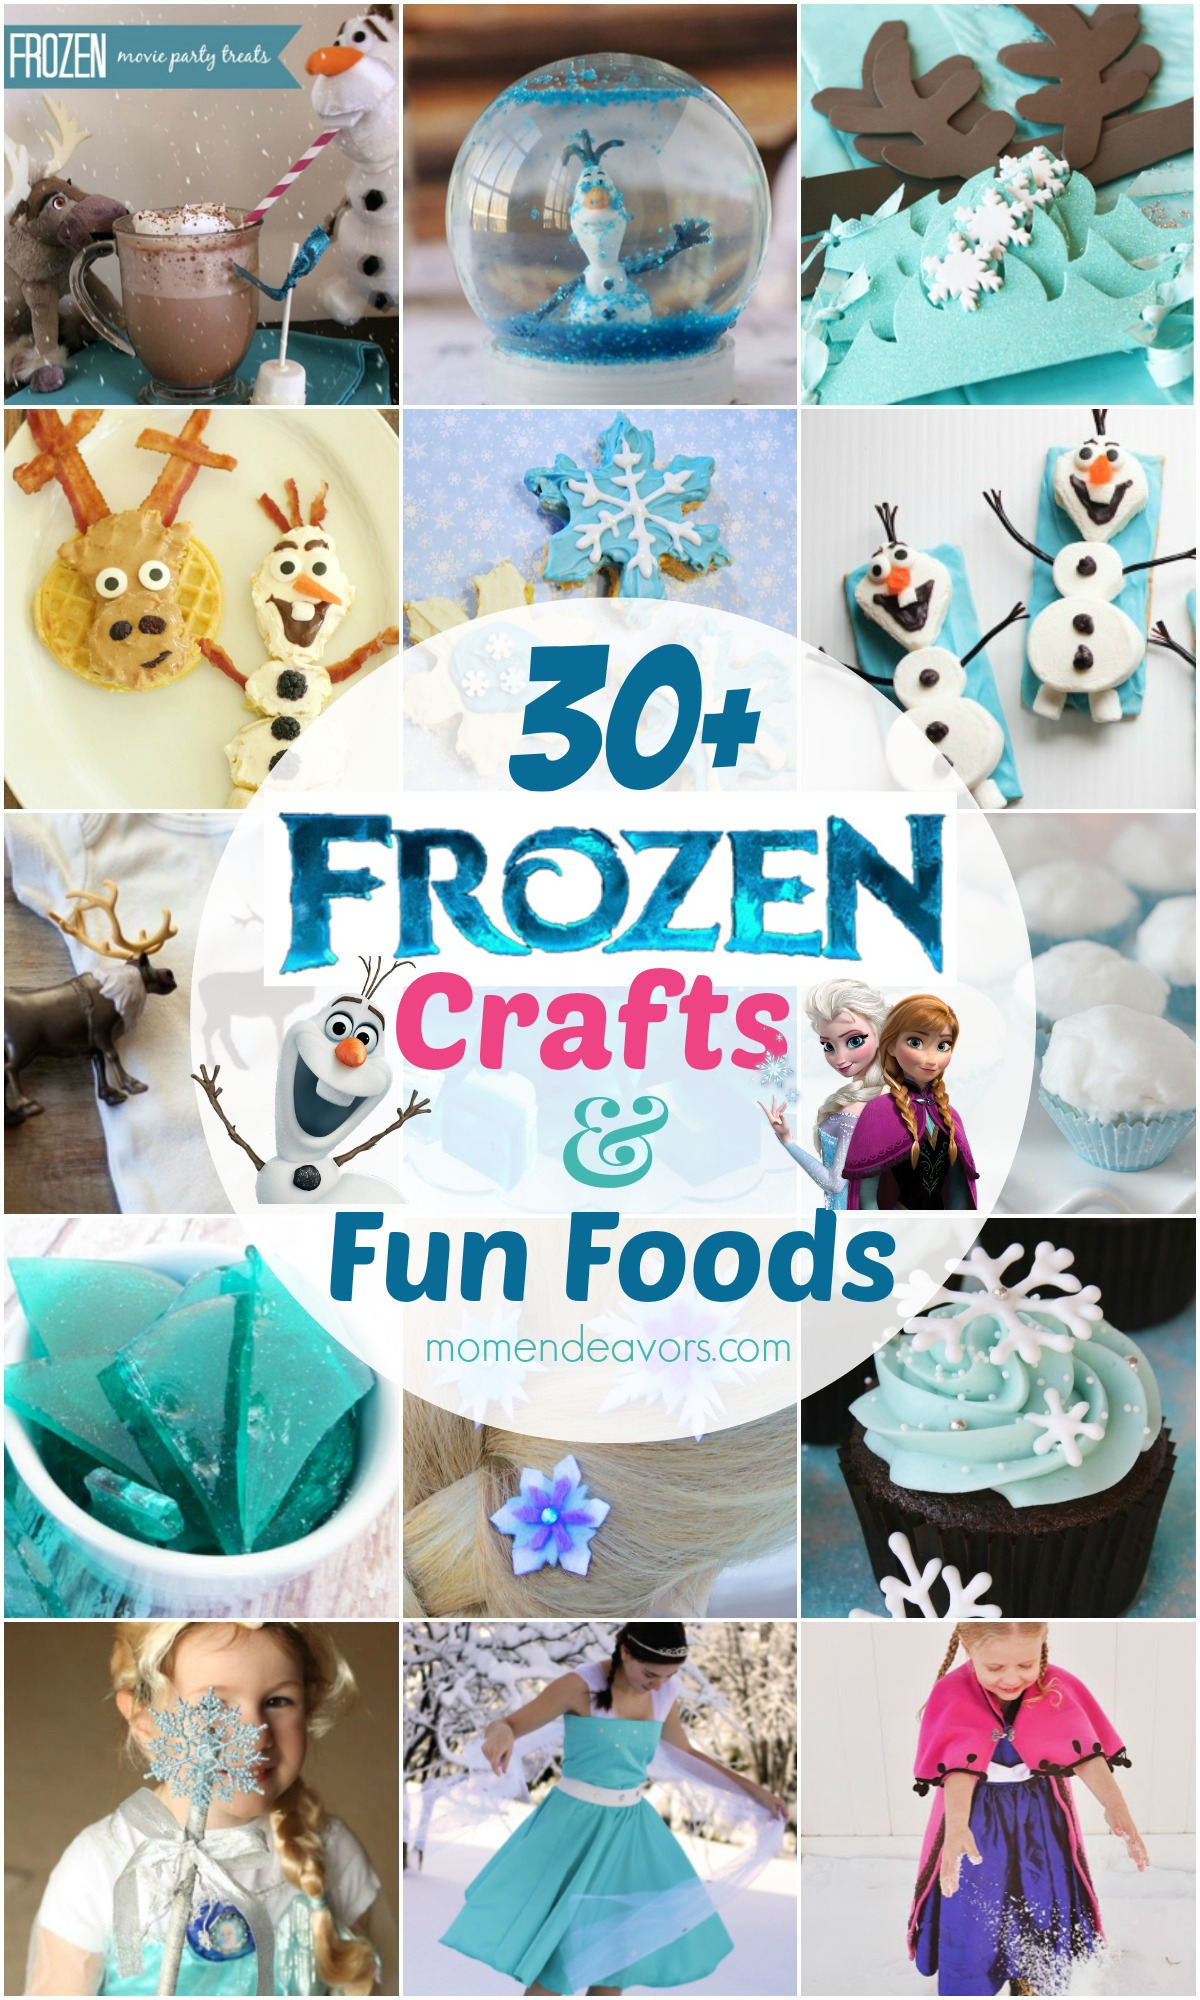 graphic regarding Frozen Party Food Labels Free Printable called 20+ No cost Disney FROZEN Printables Match Sheets Celebration